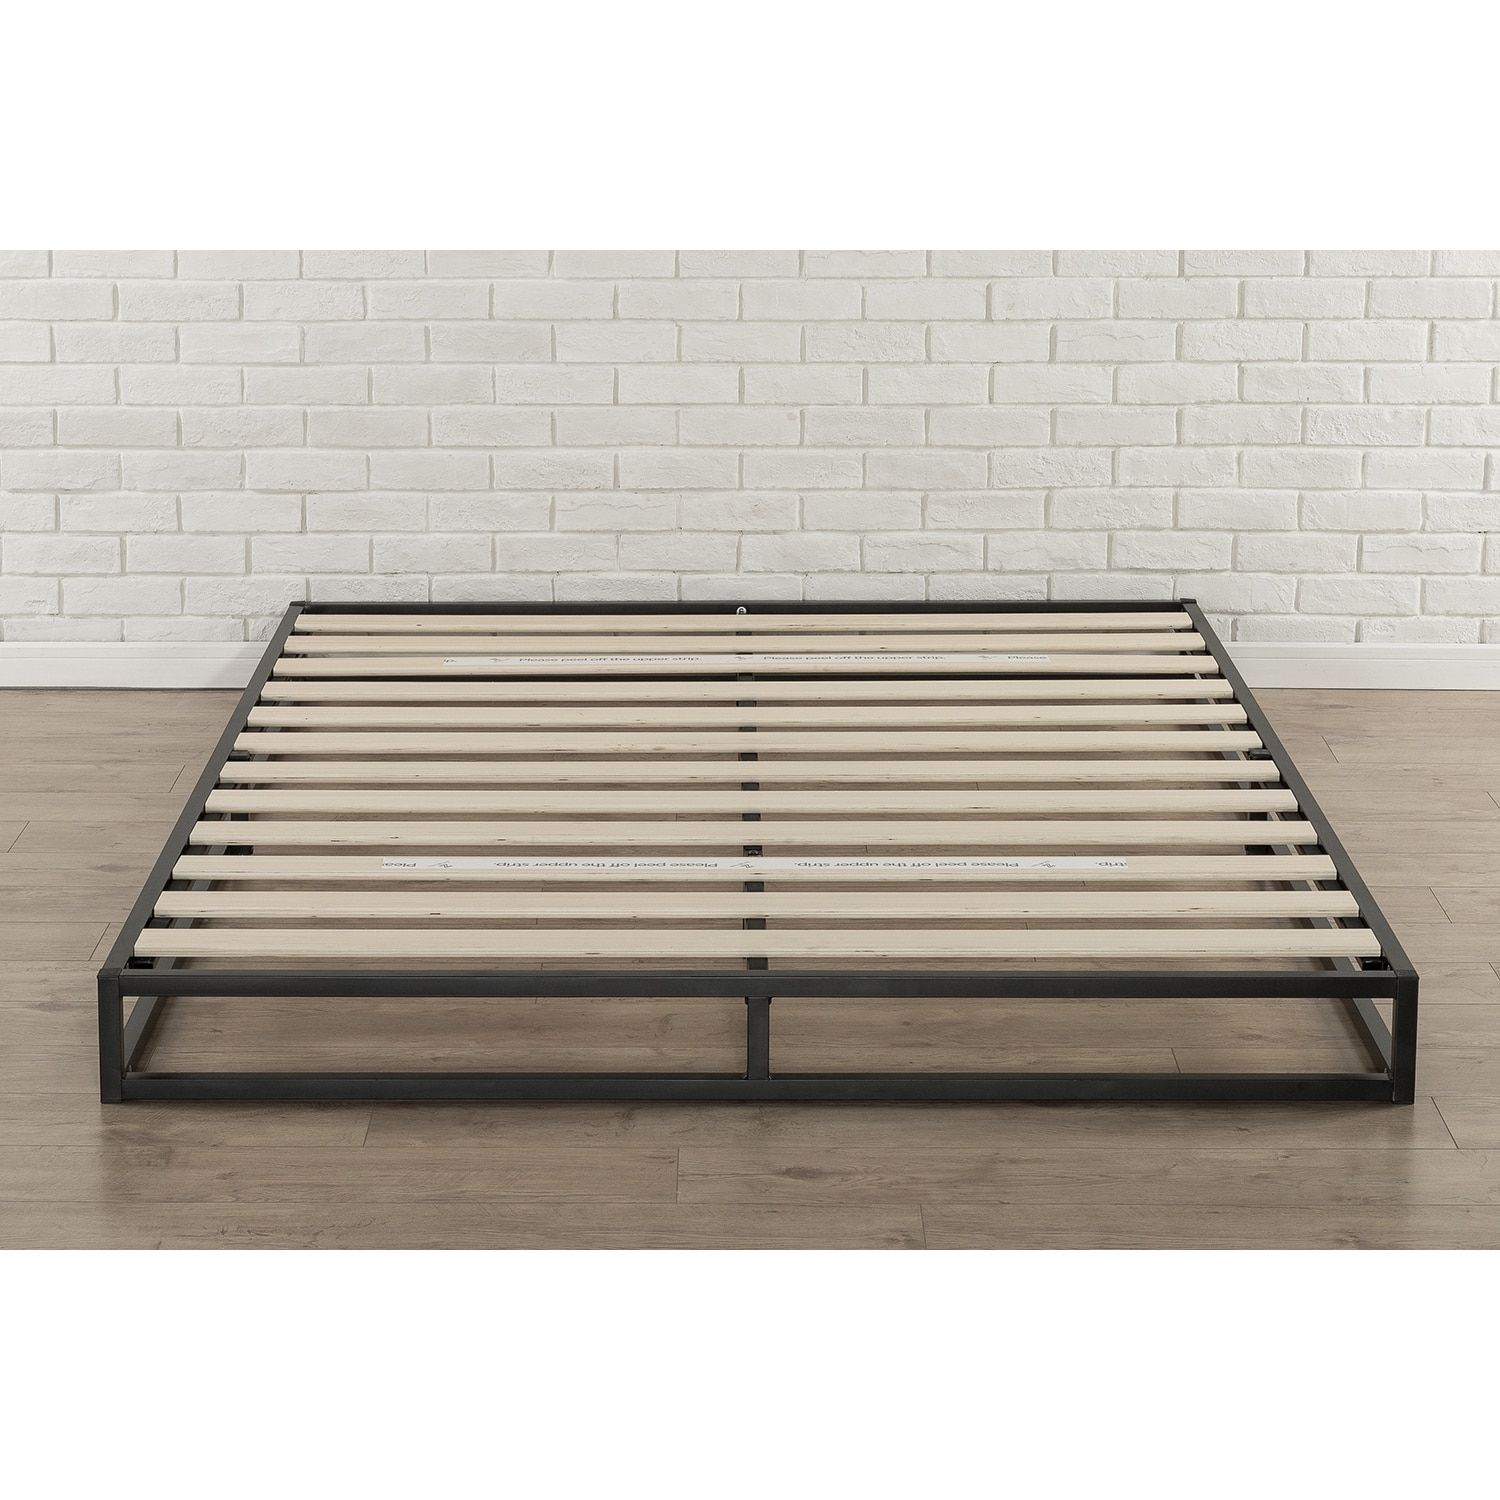 Priage 6 Inch Full Size Metal Platform Bed Frame Black